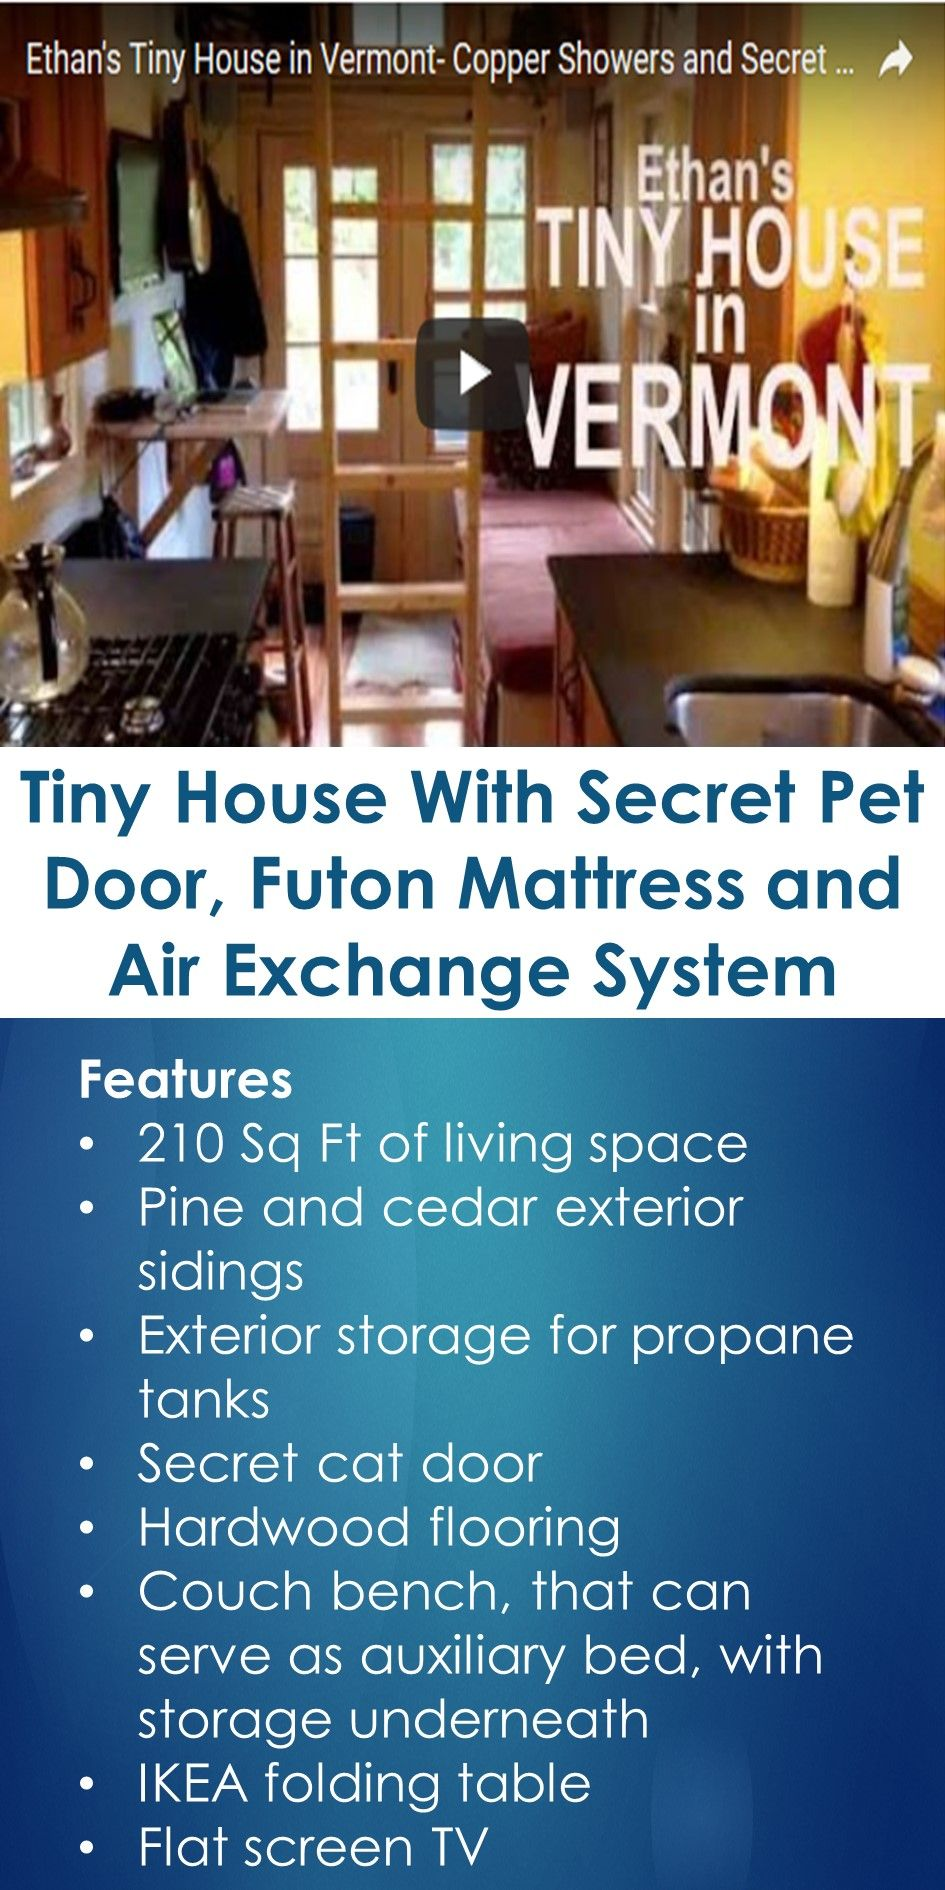 Tiny House With Secret Pet Door Futon Mattress And Air Exchange System In This Guide You Will Learn The Following Topper For